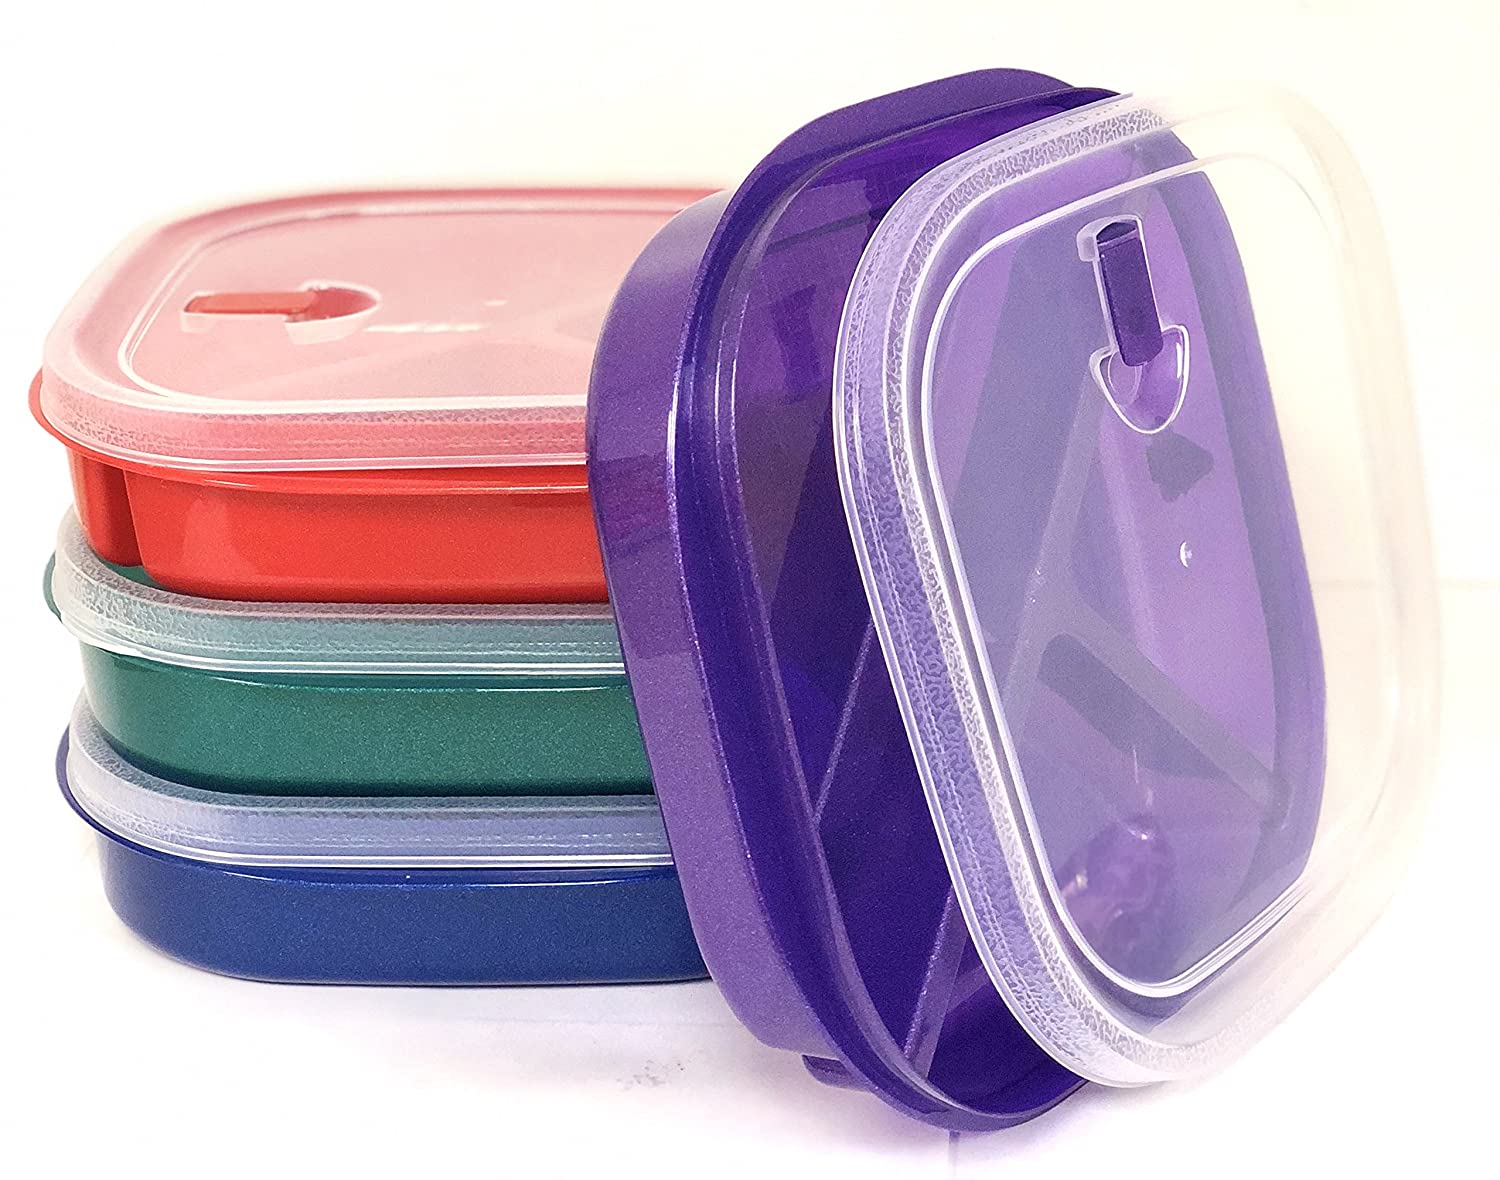 Vrinda (Set of 4) Microwave Food Storage Tray Container Square - 3 Section/Compartment Divided Plates w/Vented Lid